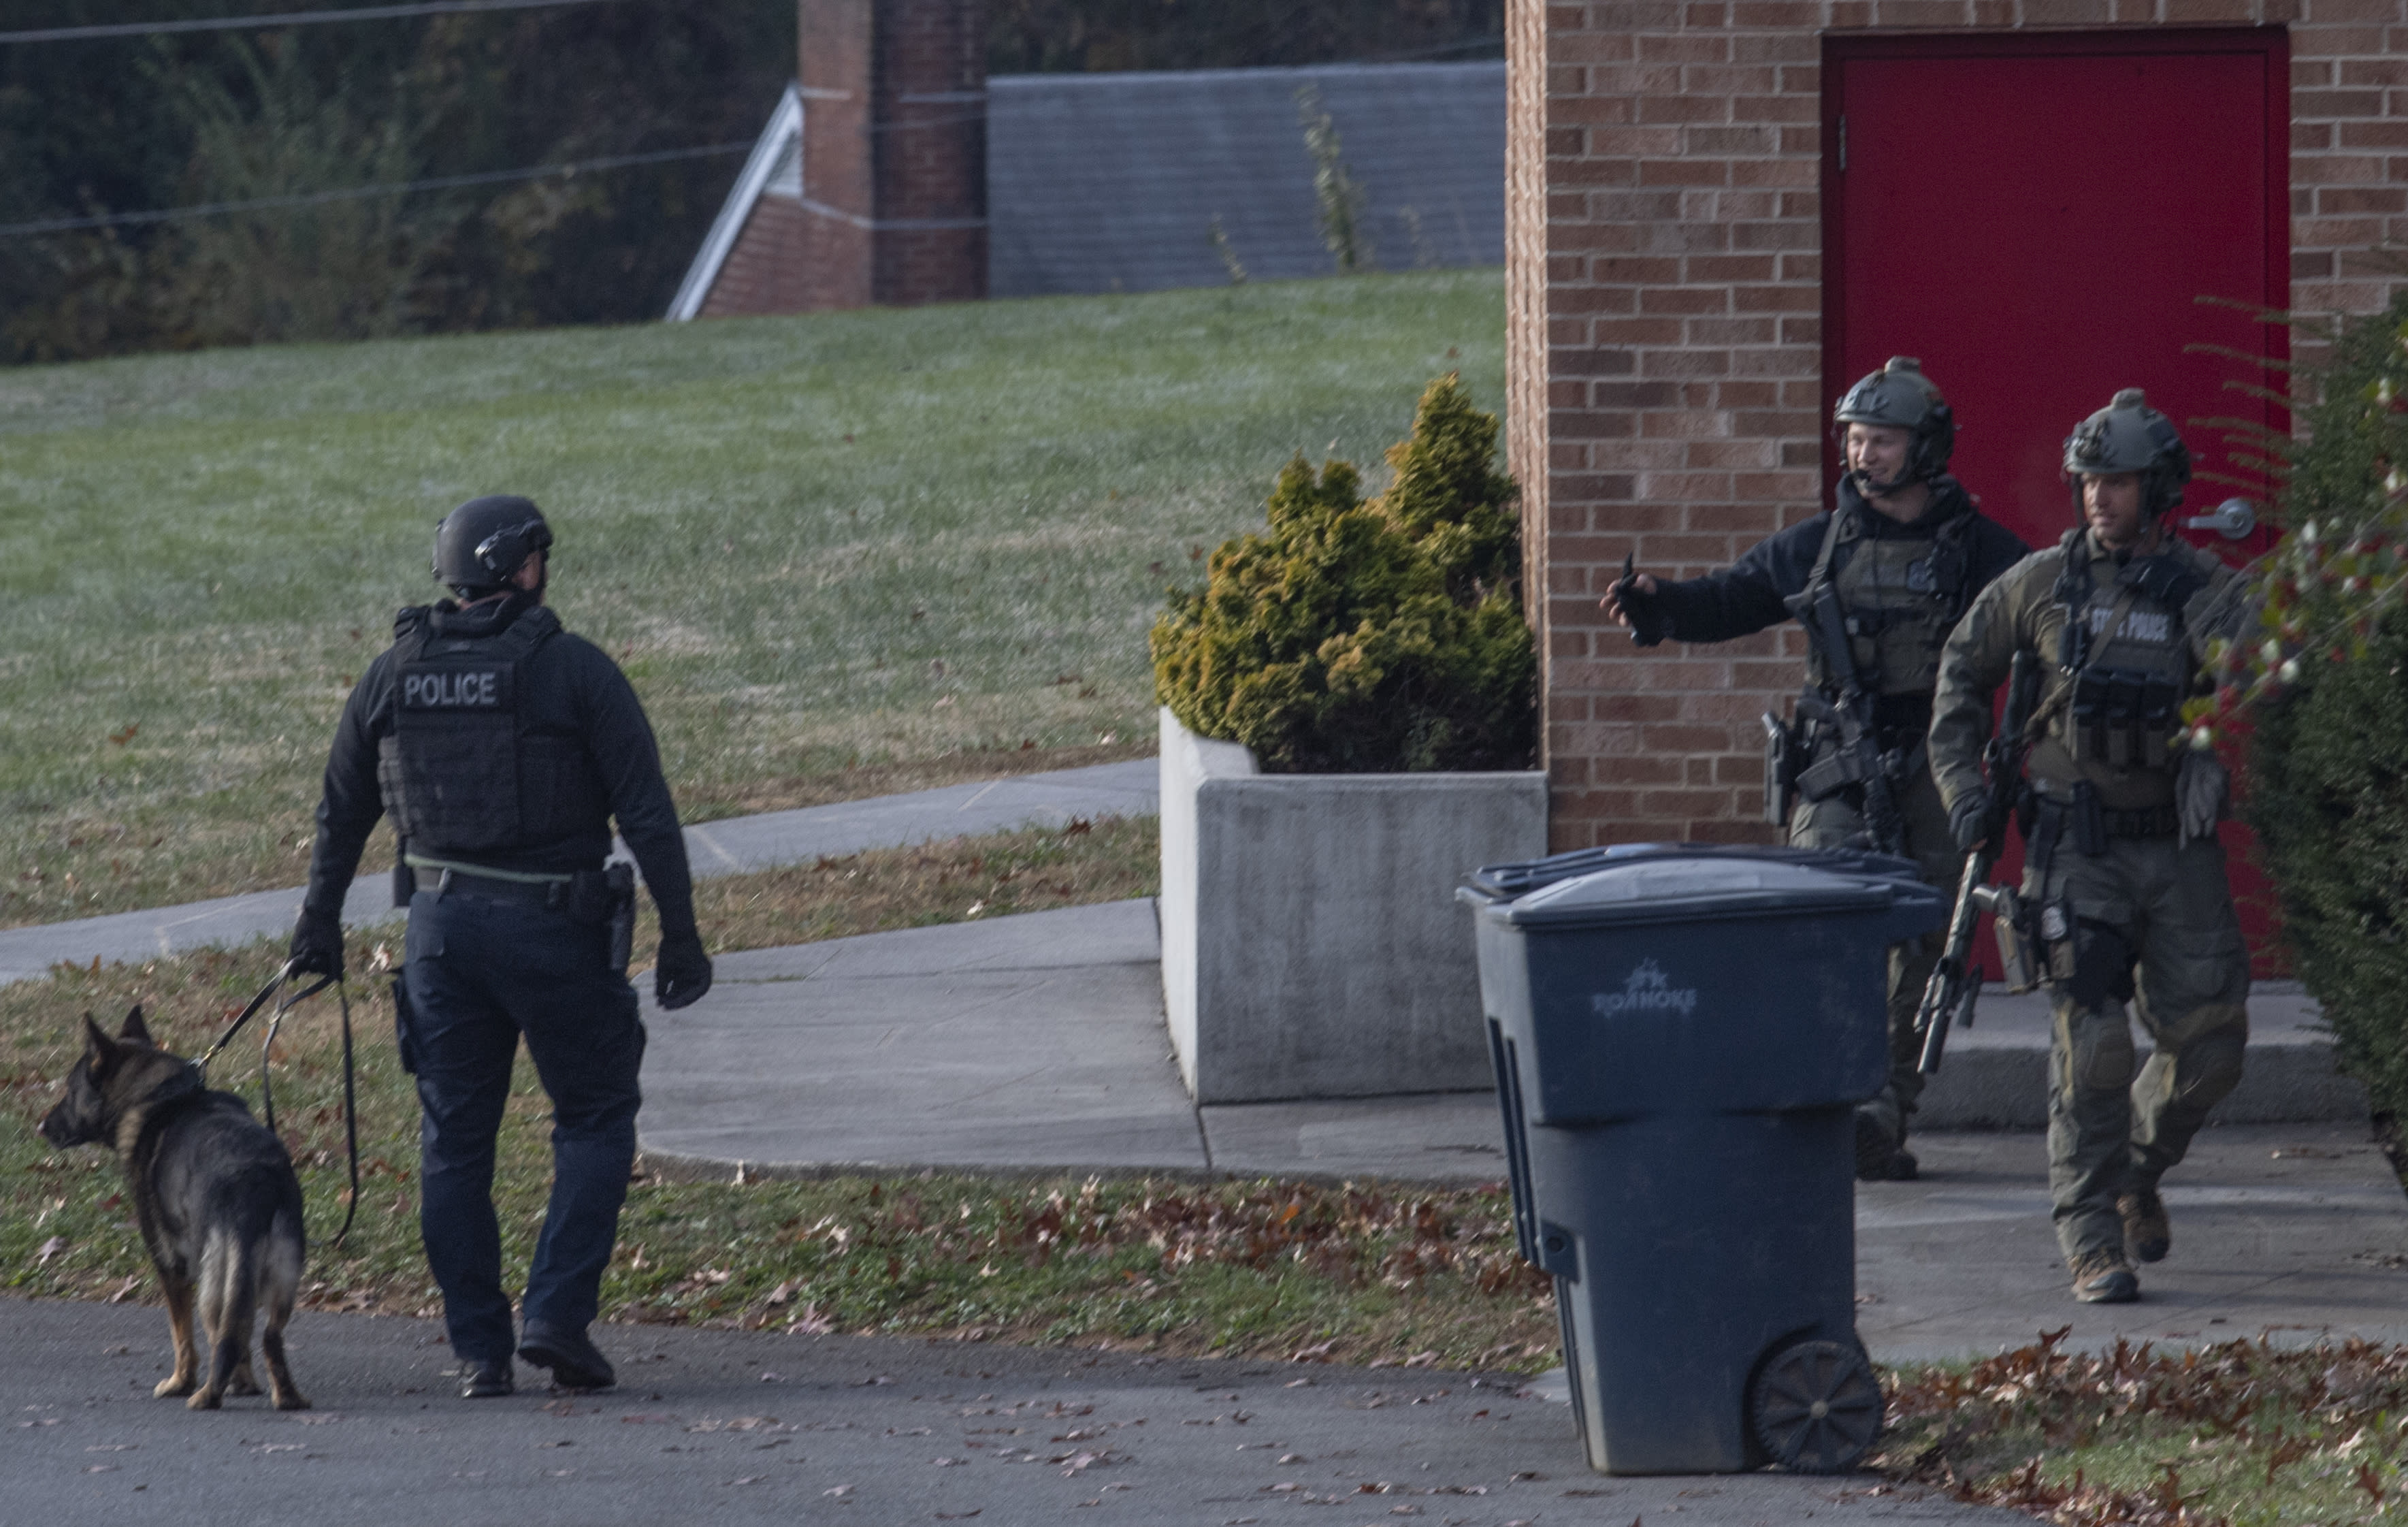 Police search a local church for a Marine deserter who is wanted for questioning in a murder case, in Roanoke, Va., Thursday, Nov. 14, 2019. (AP Photo/Don Petersen)